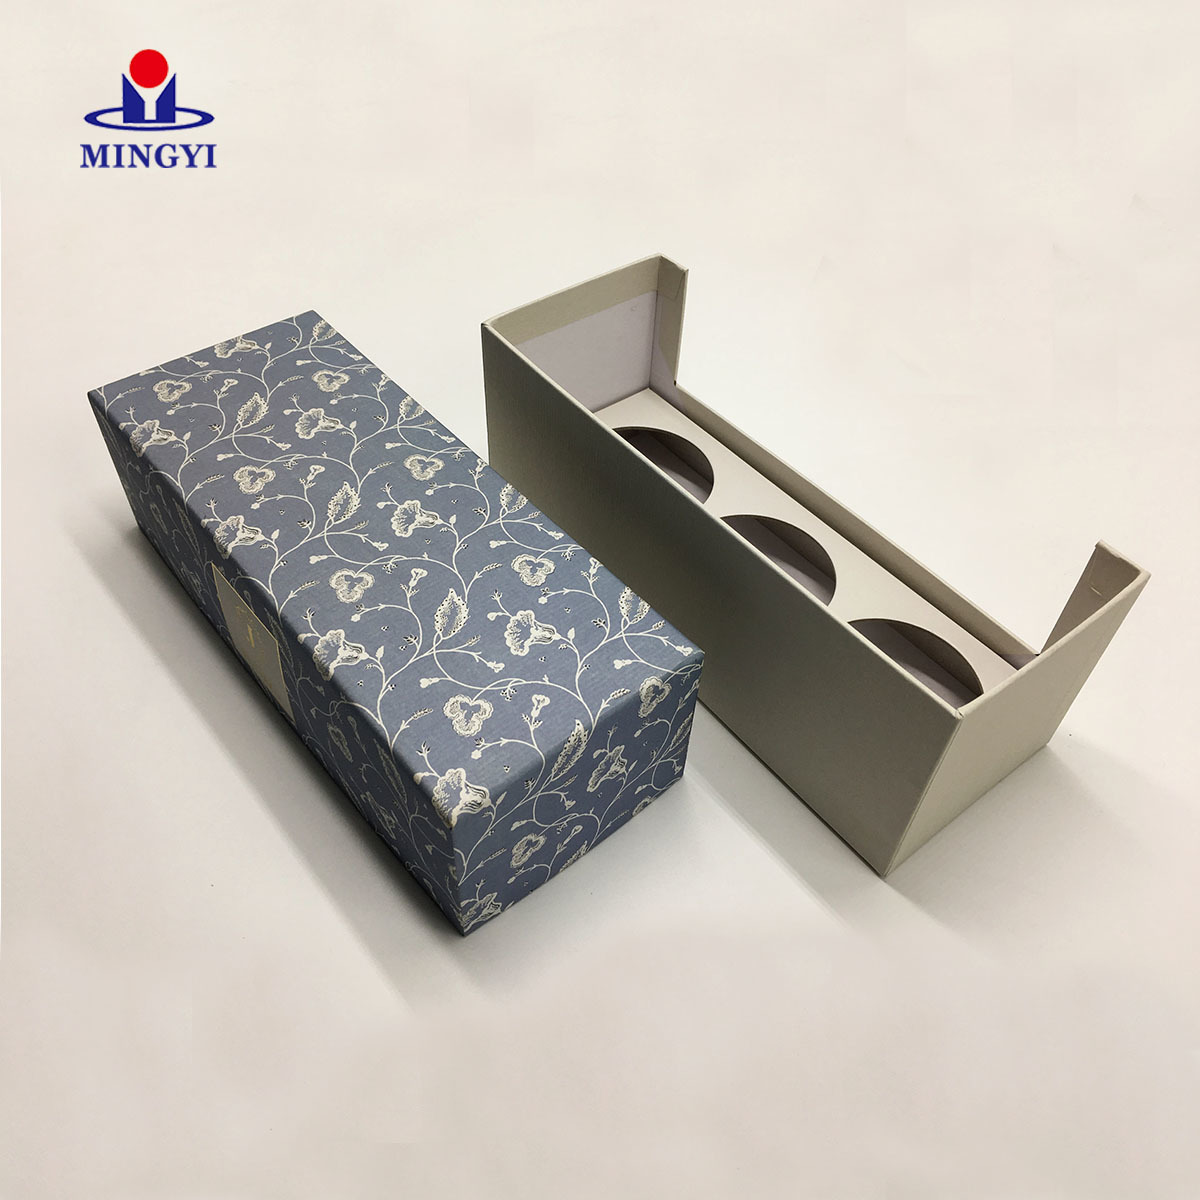 China supplier luxury candle packaging gift box with tray custom logo